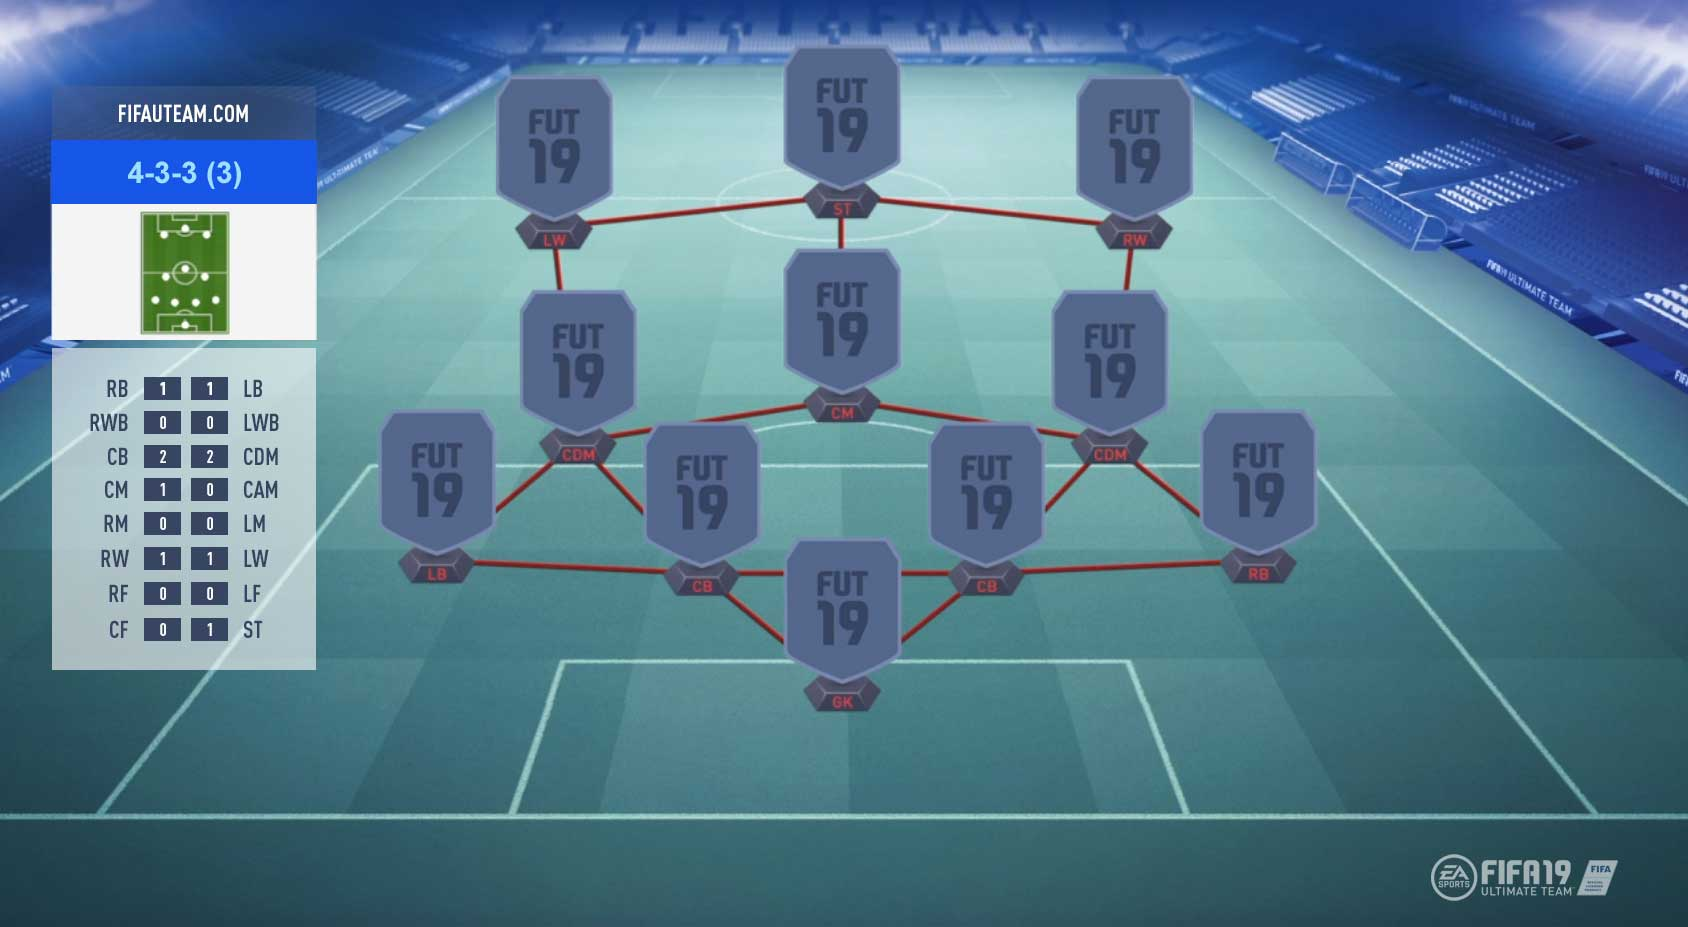 FIFA 19 Formations Guide – 4-3-3 (3)